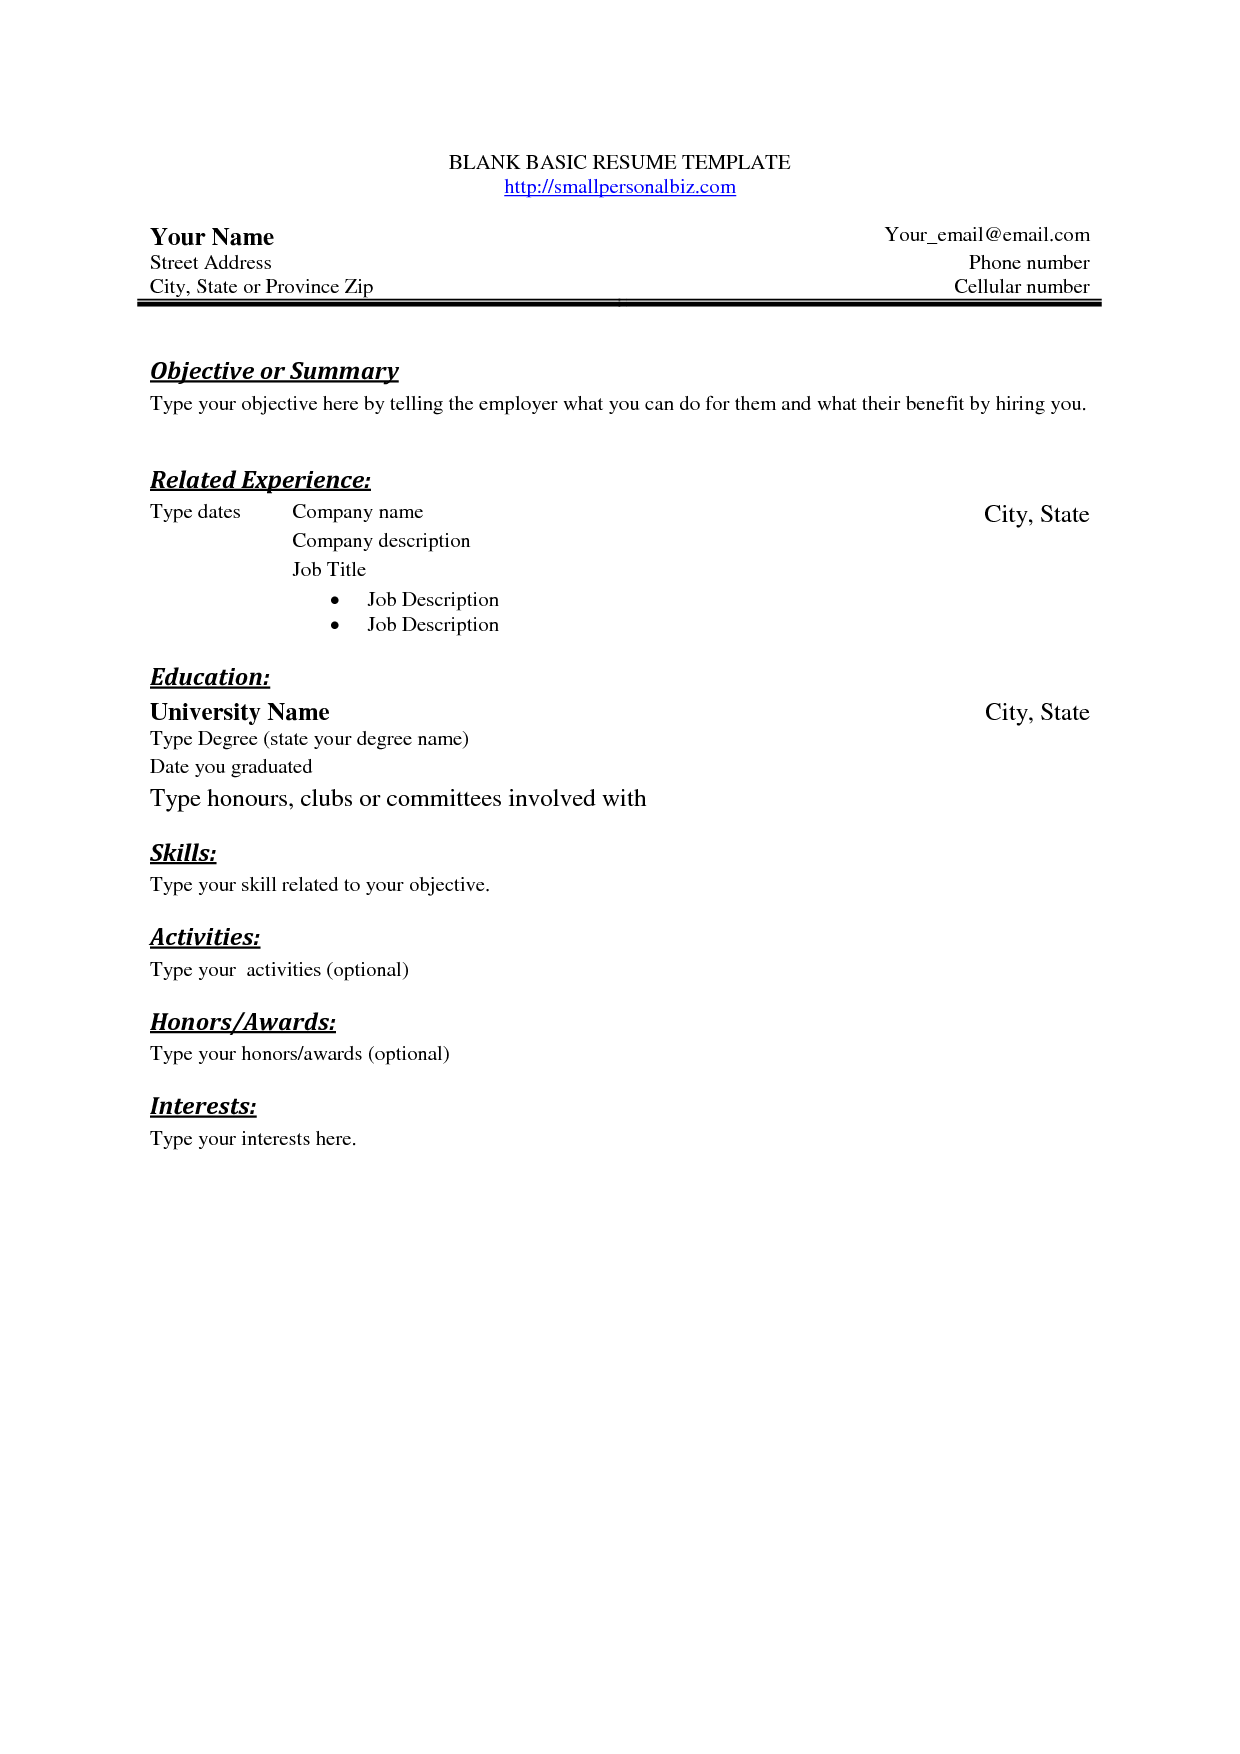 simple blank resume format  Stylist And Luxury Simple Resume Layout 10 Free Basic Blank Resume ...